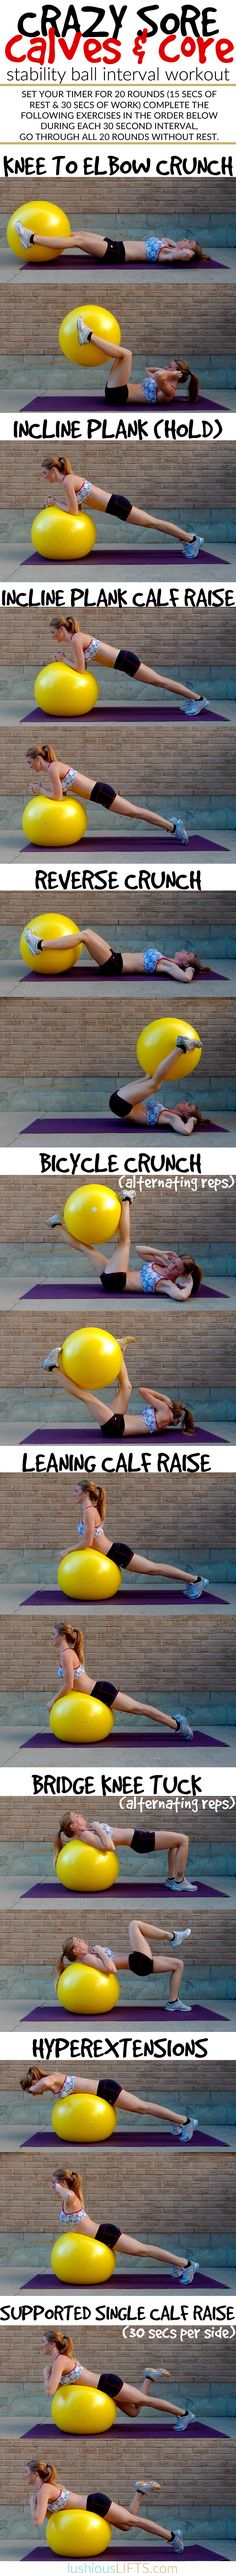 Crazy Sore Calves & Core {Stability Ball #Interval #Workout} || lushiousLIFTS.com